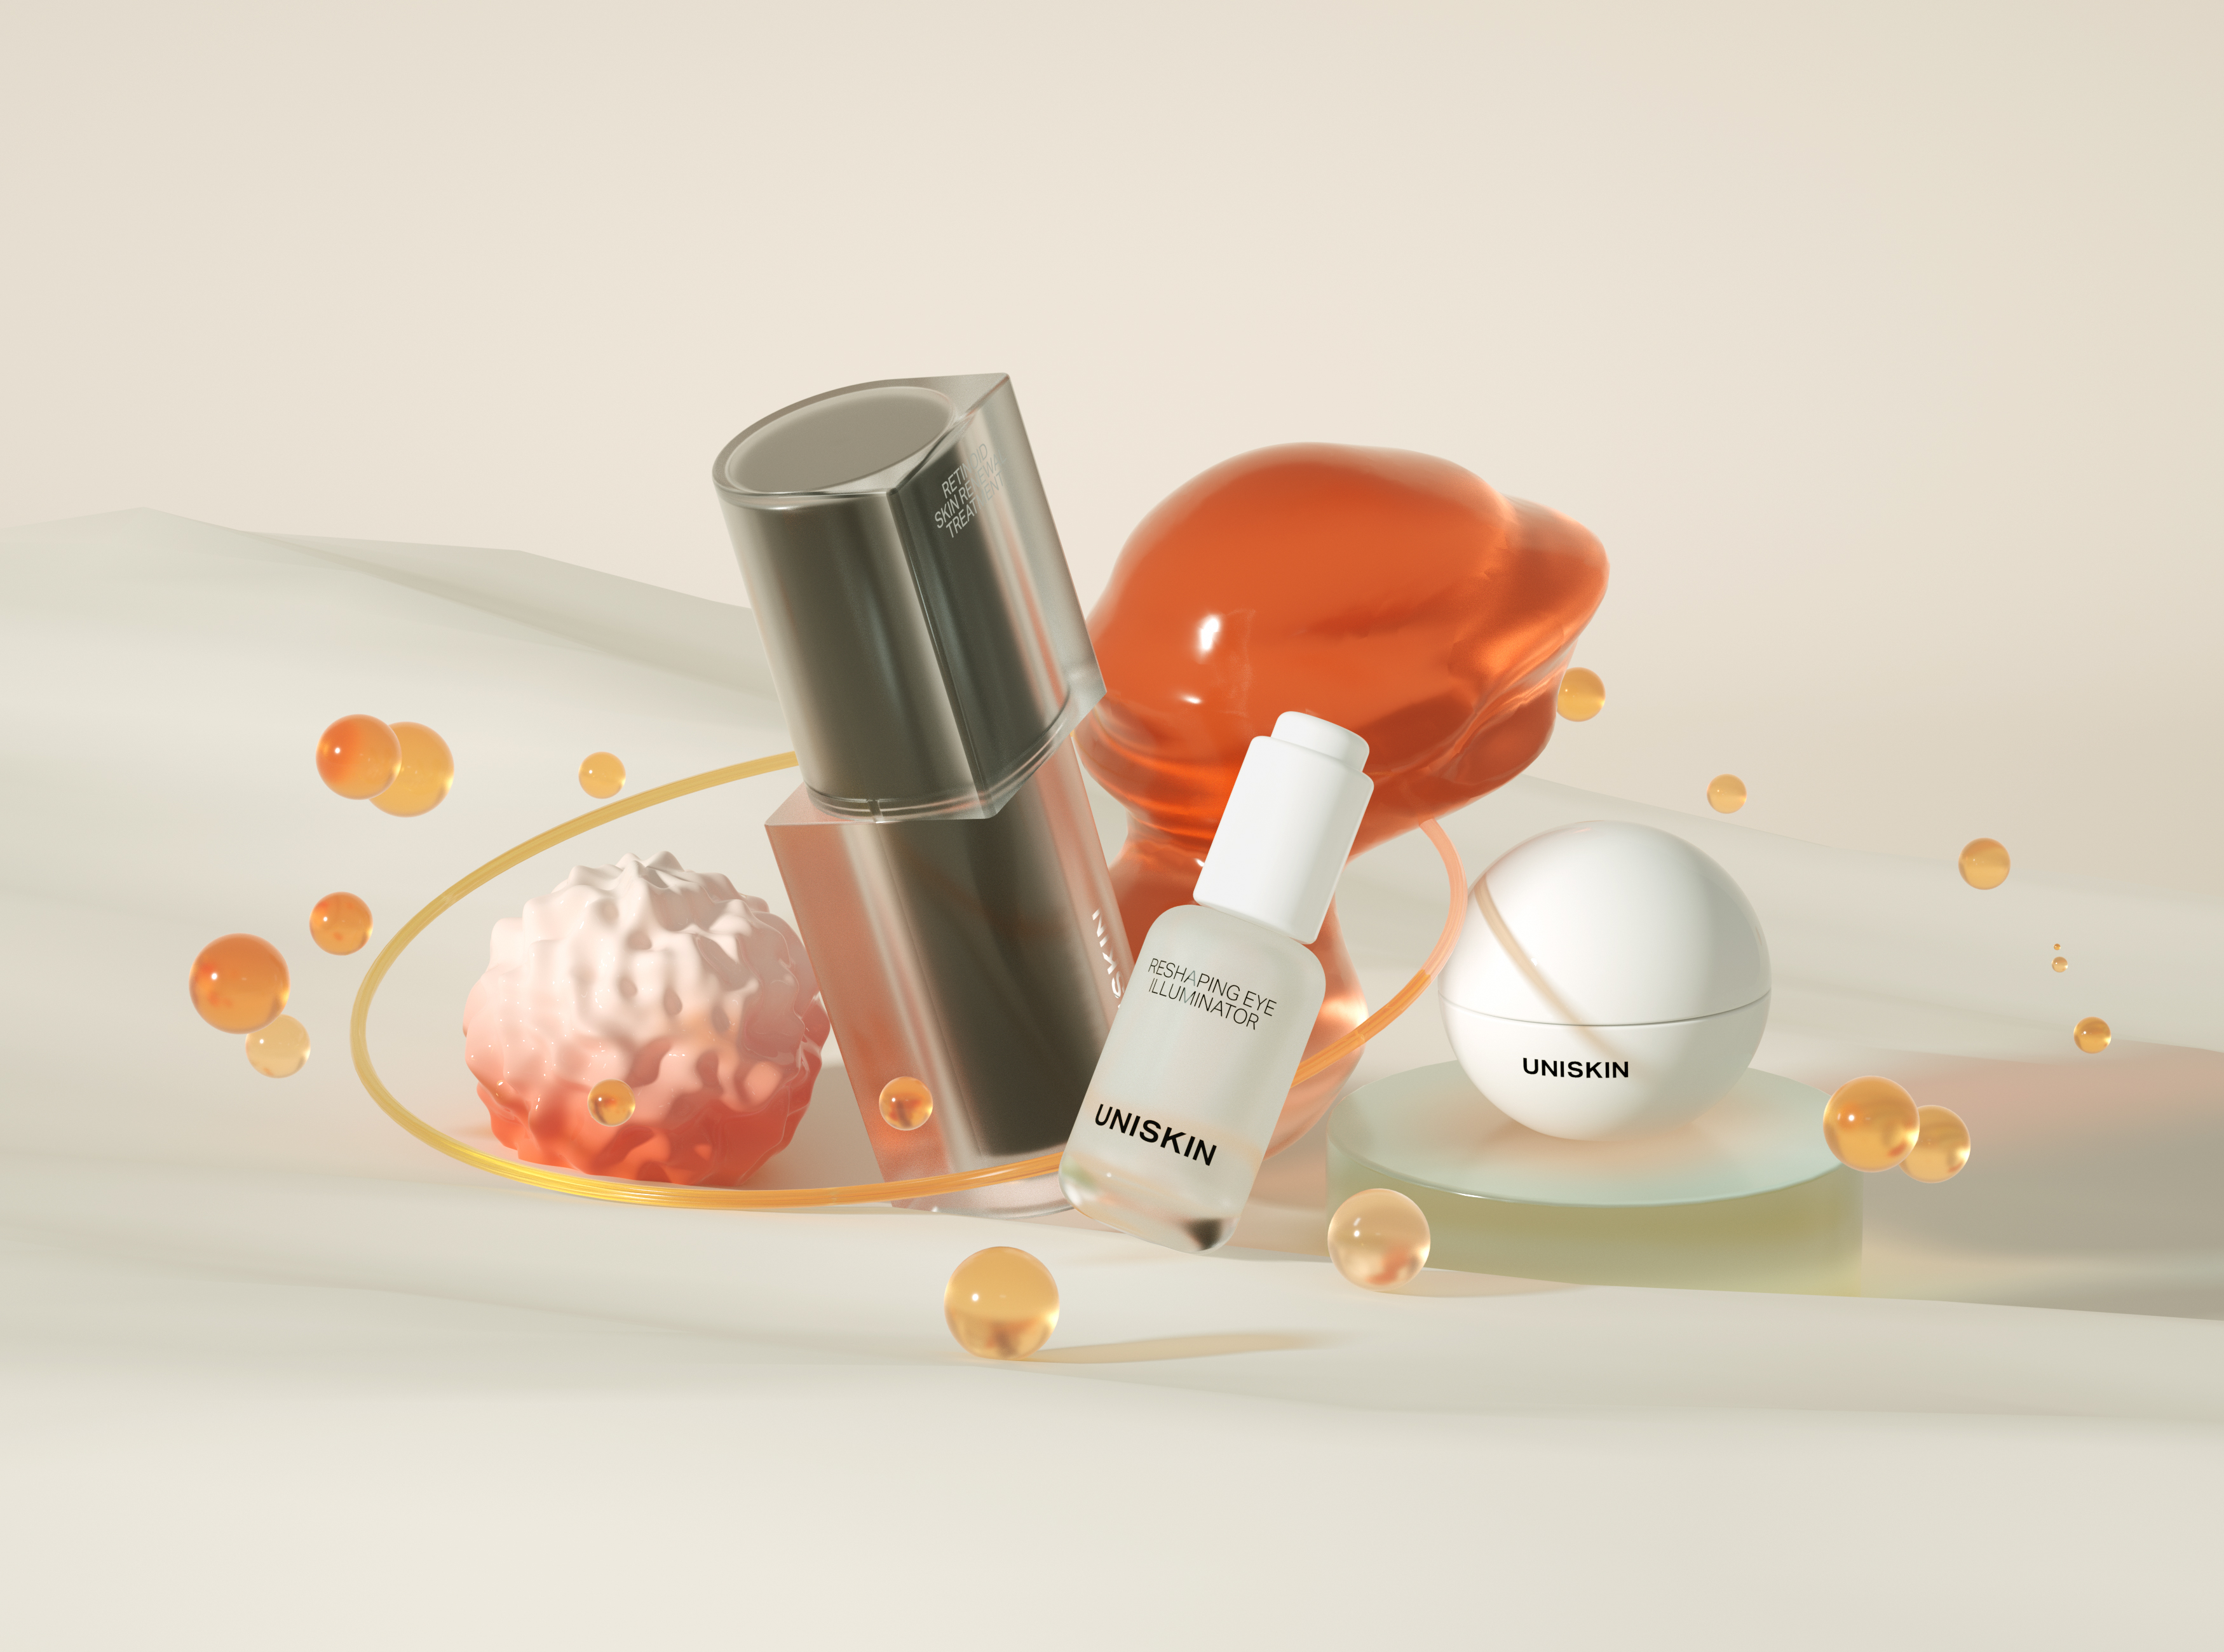 Uniskin's eye cream, which comes in a spherical container, is by far its top seller, accounting for 40 percent of its sales.